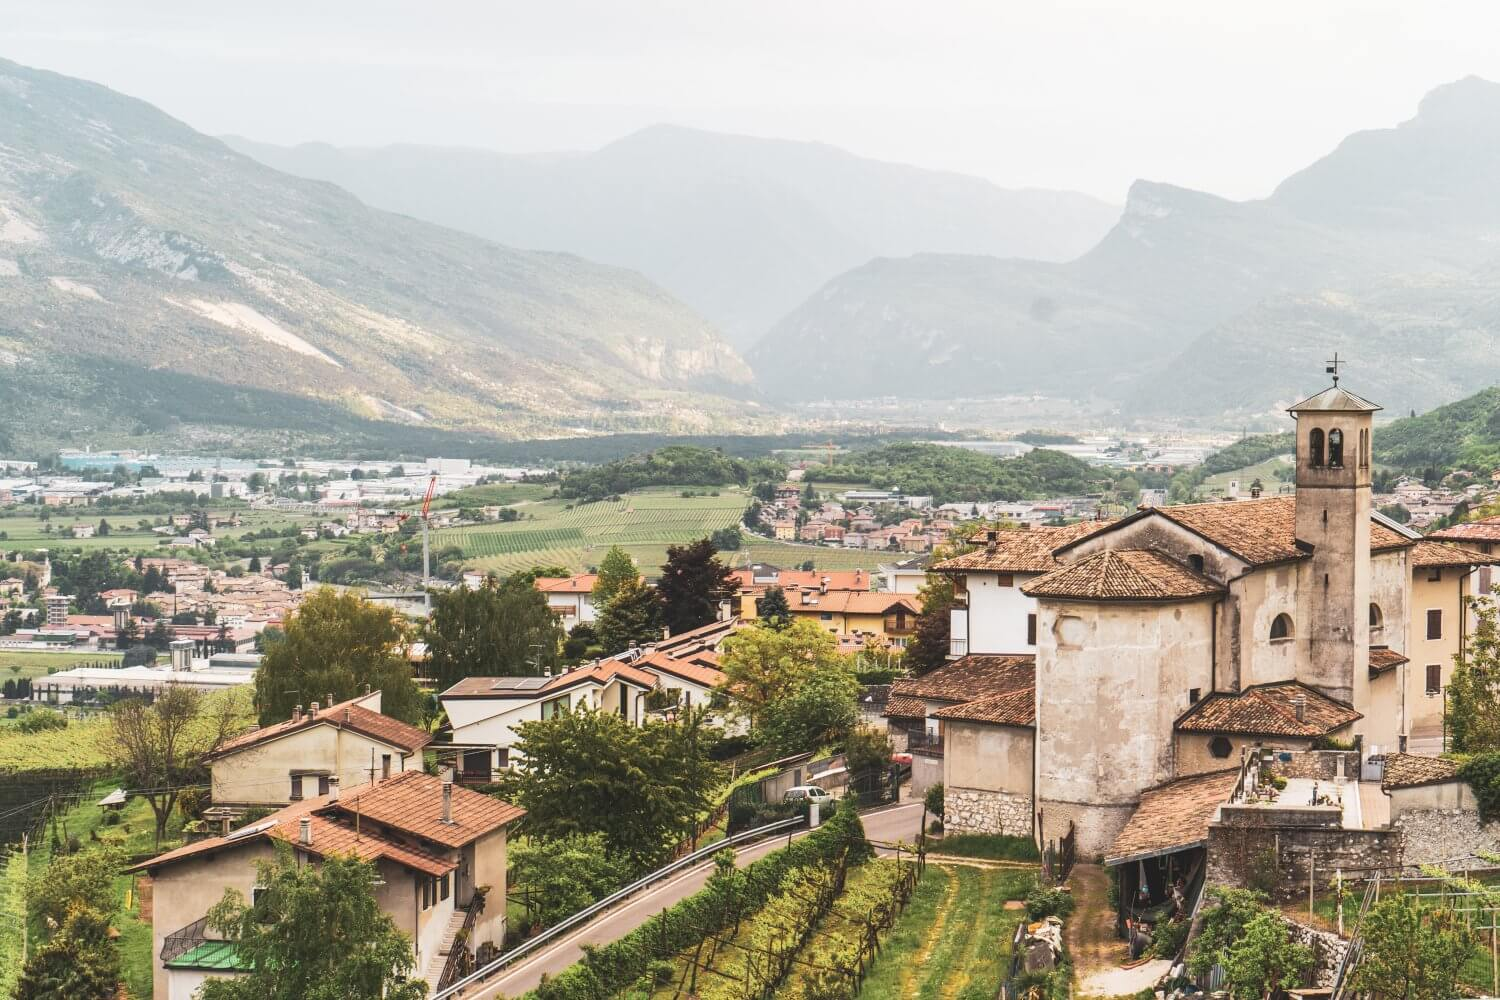 Looking for hidden gems to visit in Italy? This is why you need to visit the underrated province of Trentino! #Trentino #Trento #Rovereto